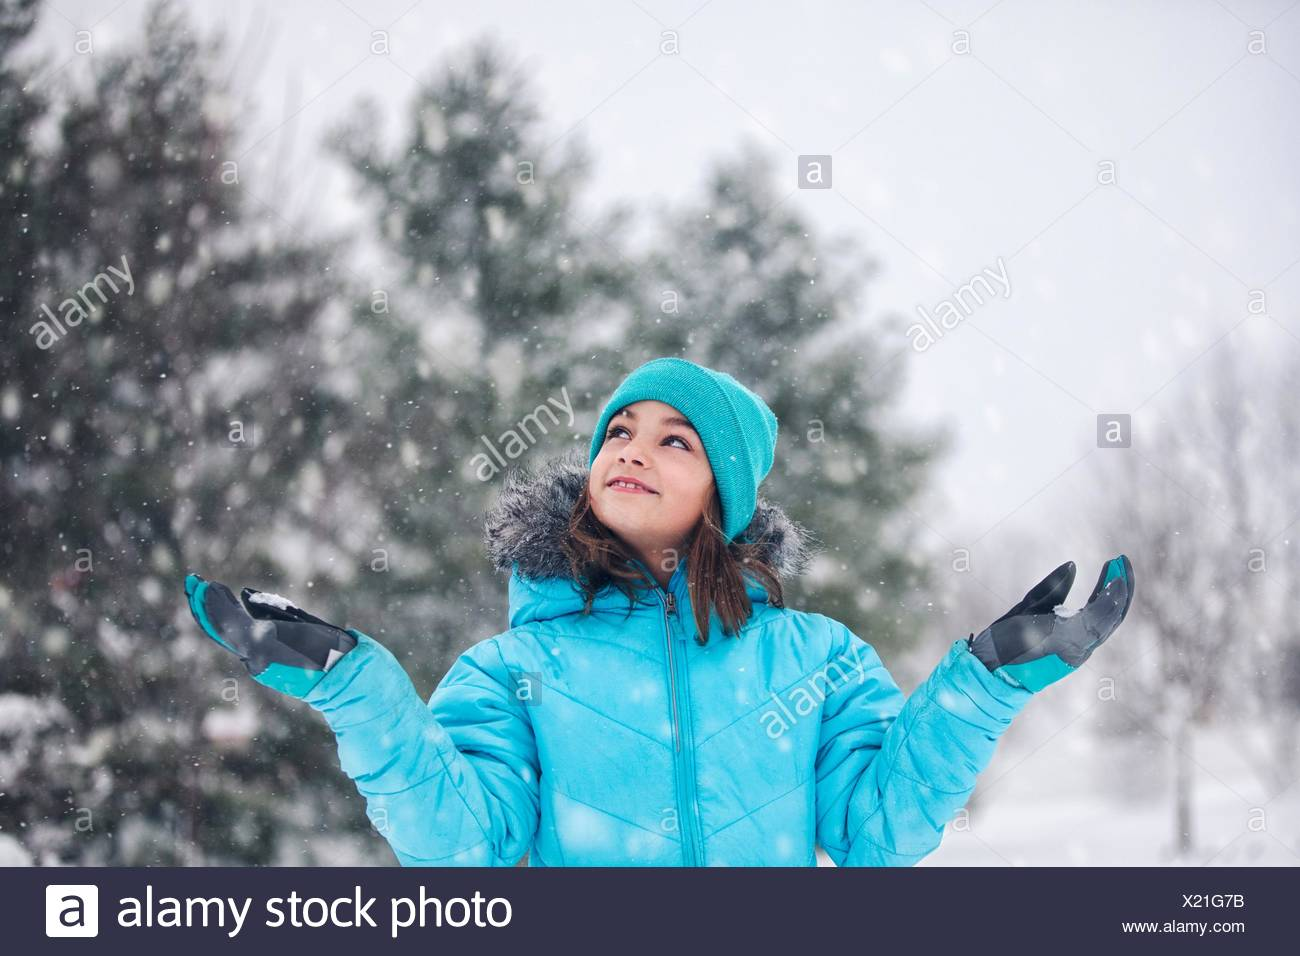 Girl wearing turquoise knit hat and coat, arms raised, hands out catching snow, looking up smiling Stock Photo